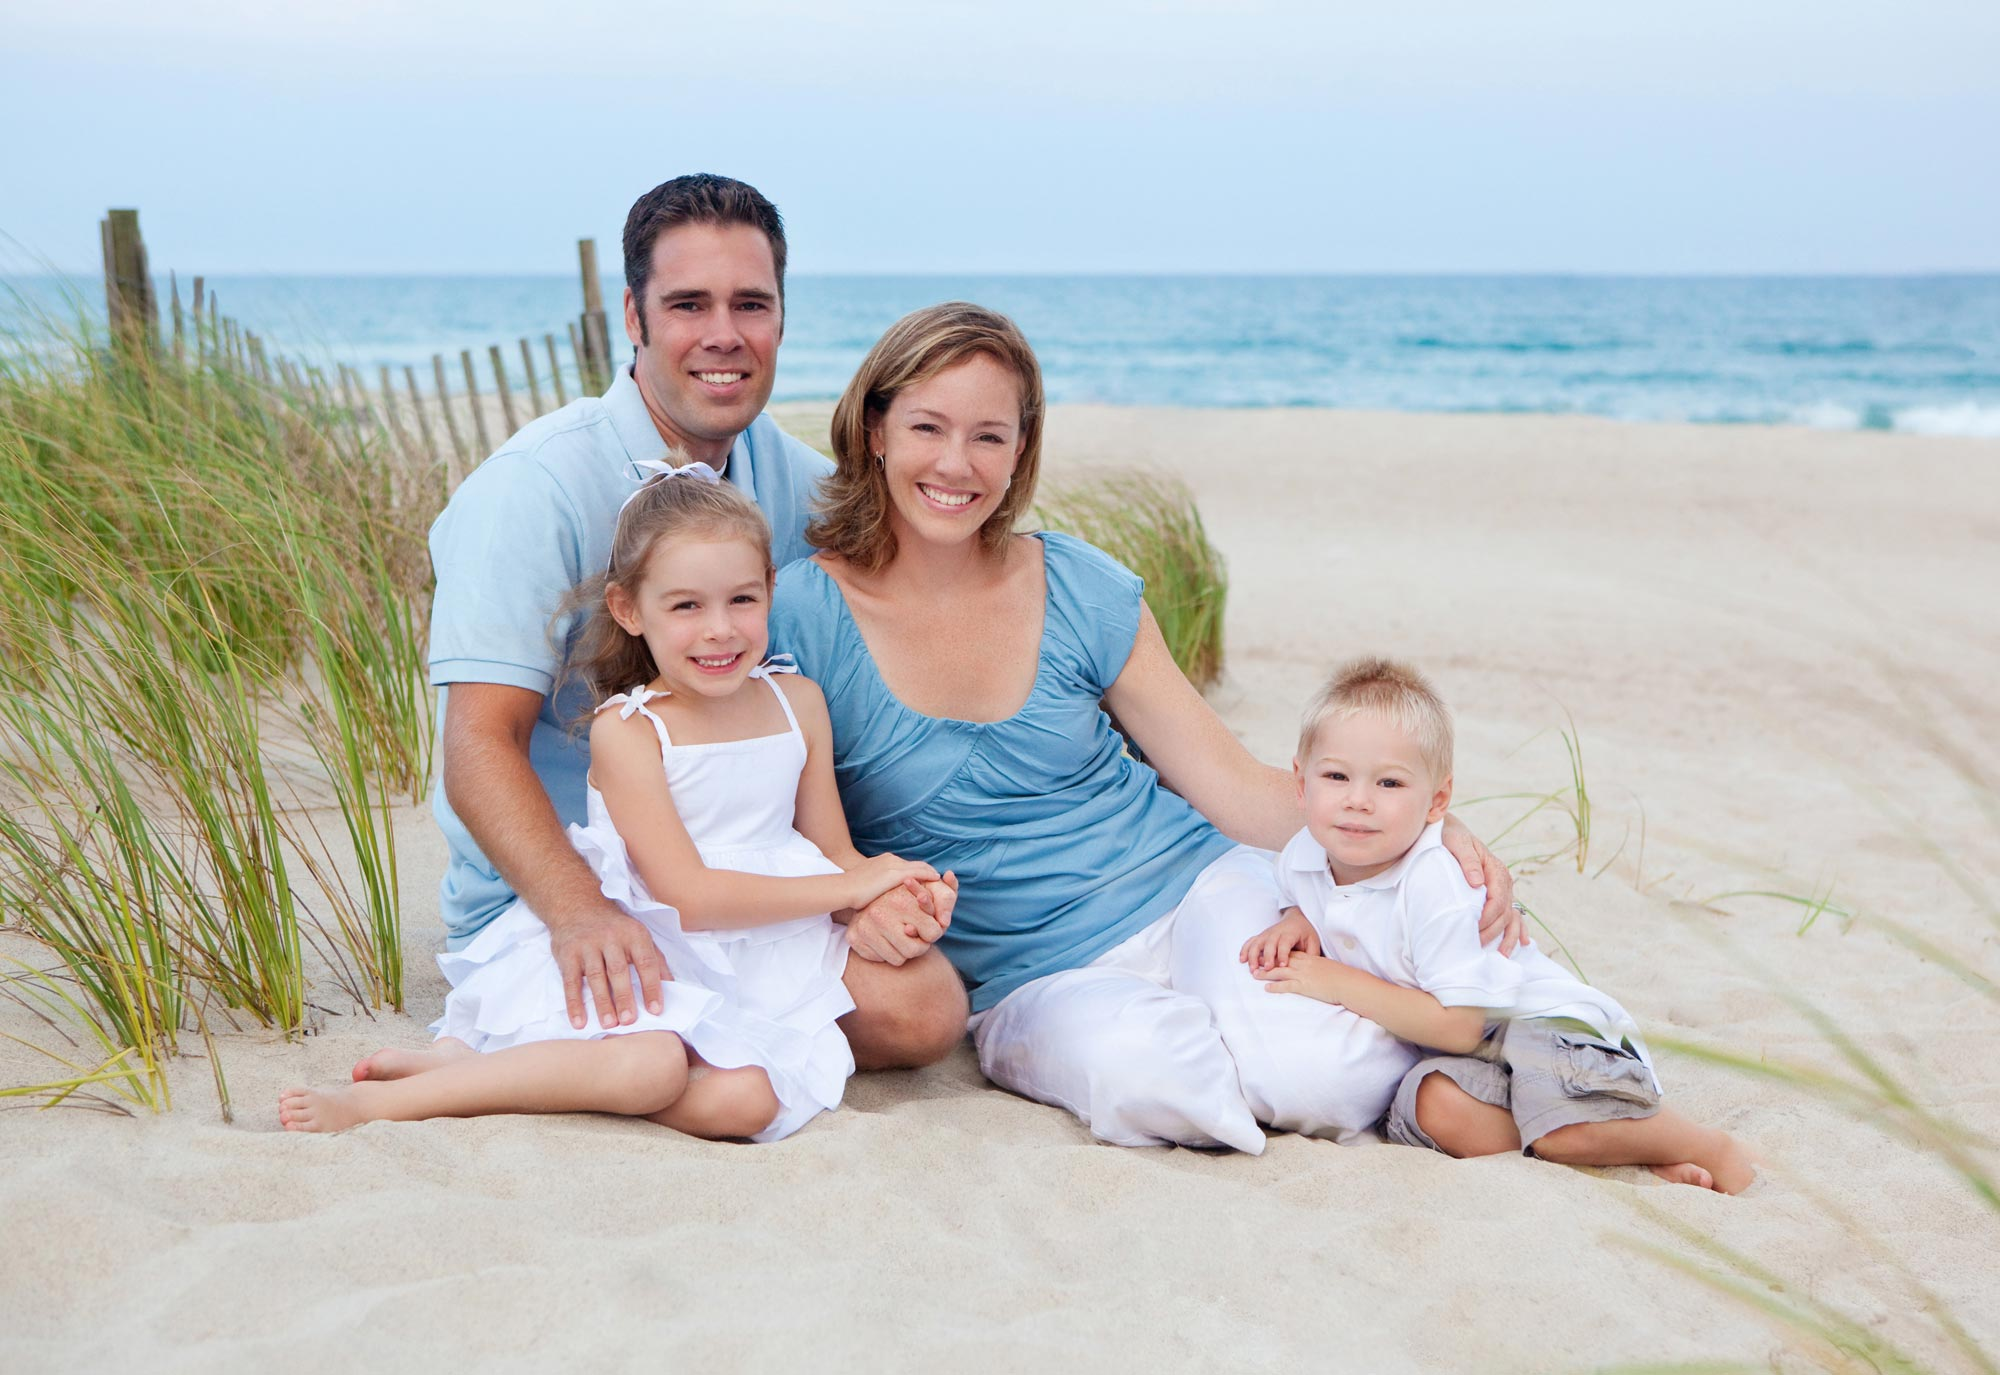 Family_beach_picture_3